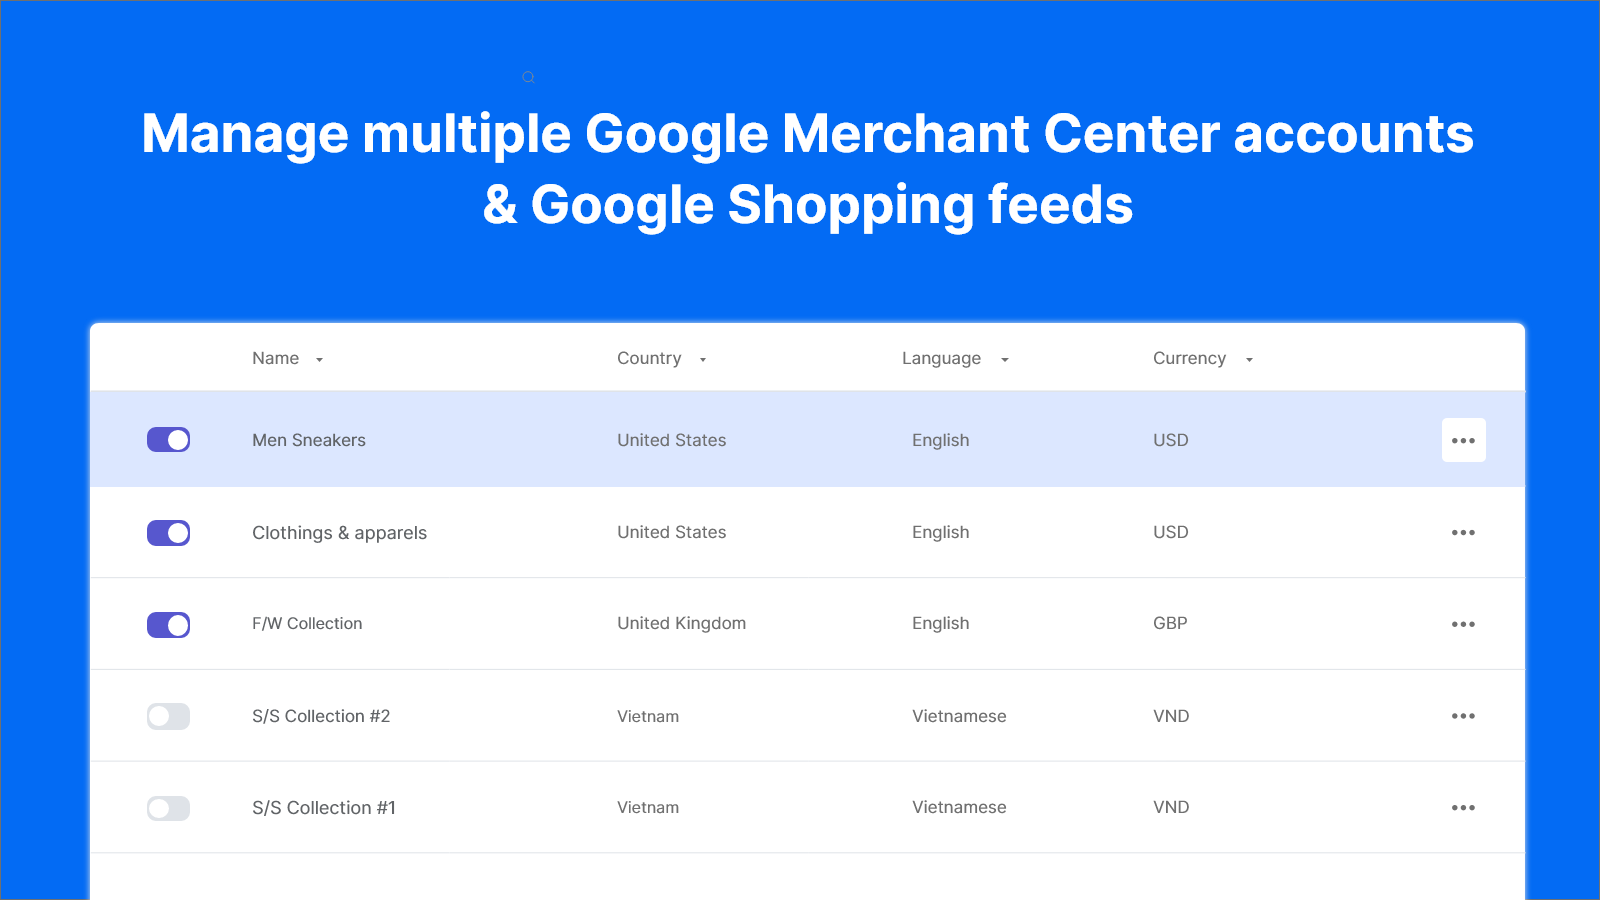 Manage multiple Google Merchant Center accounts and feeds